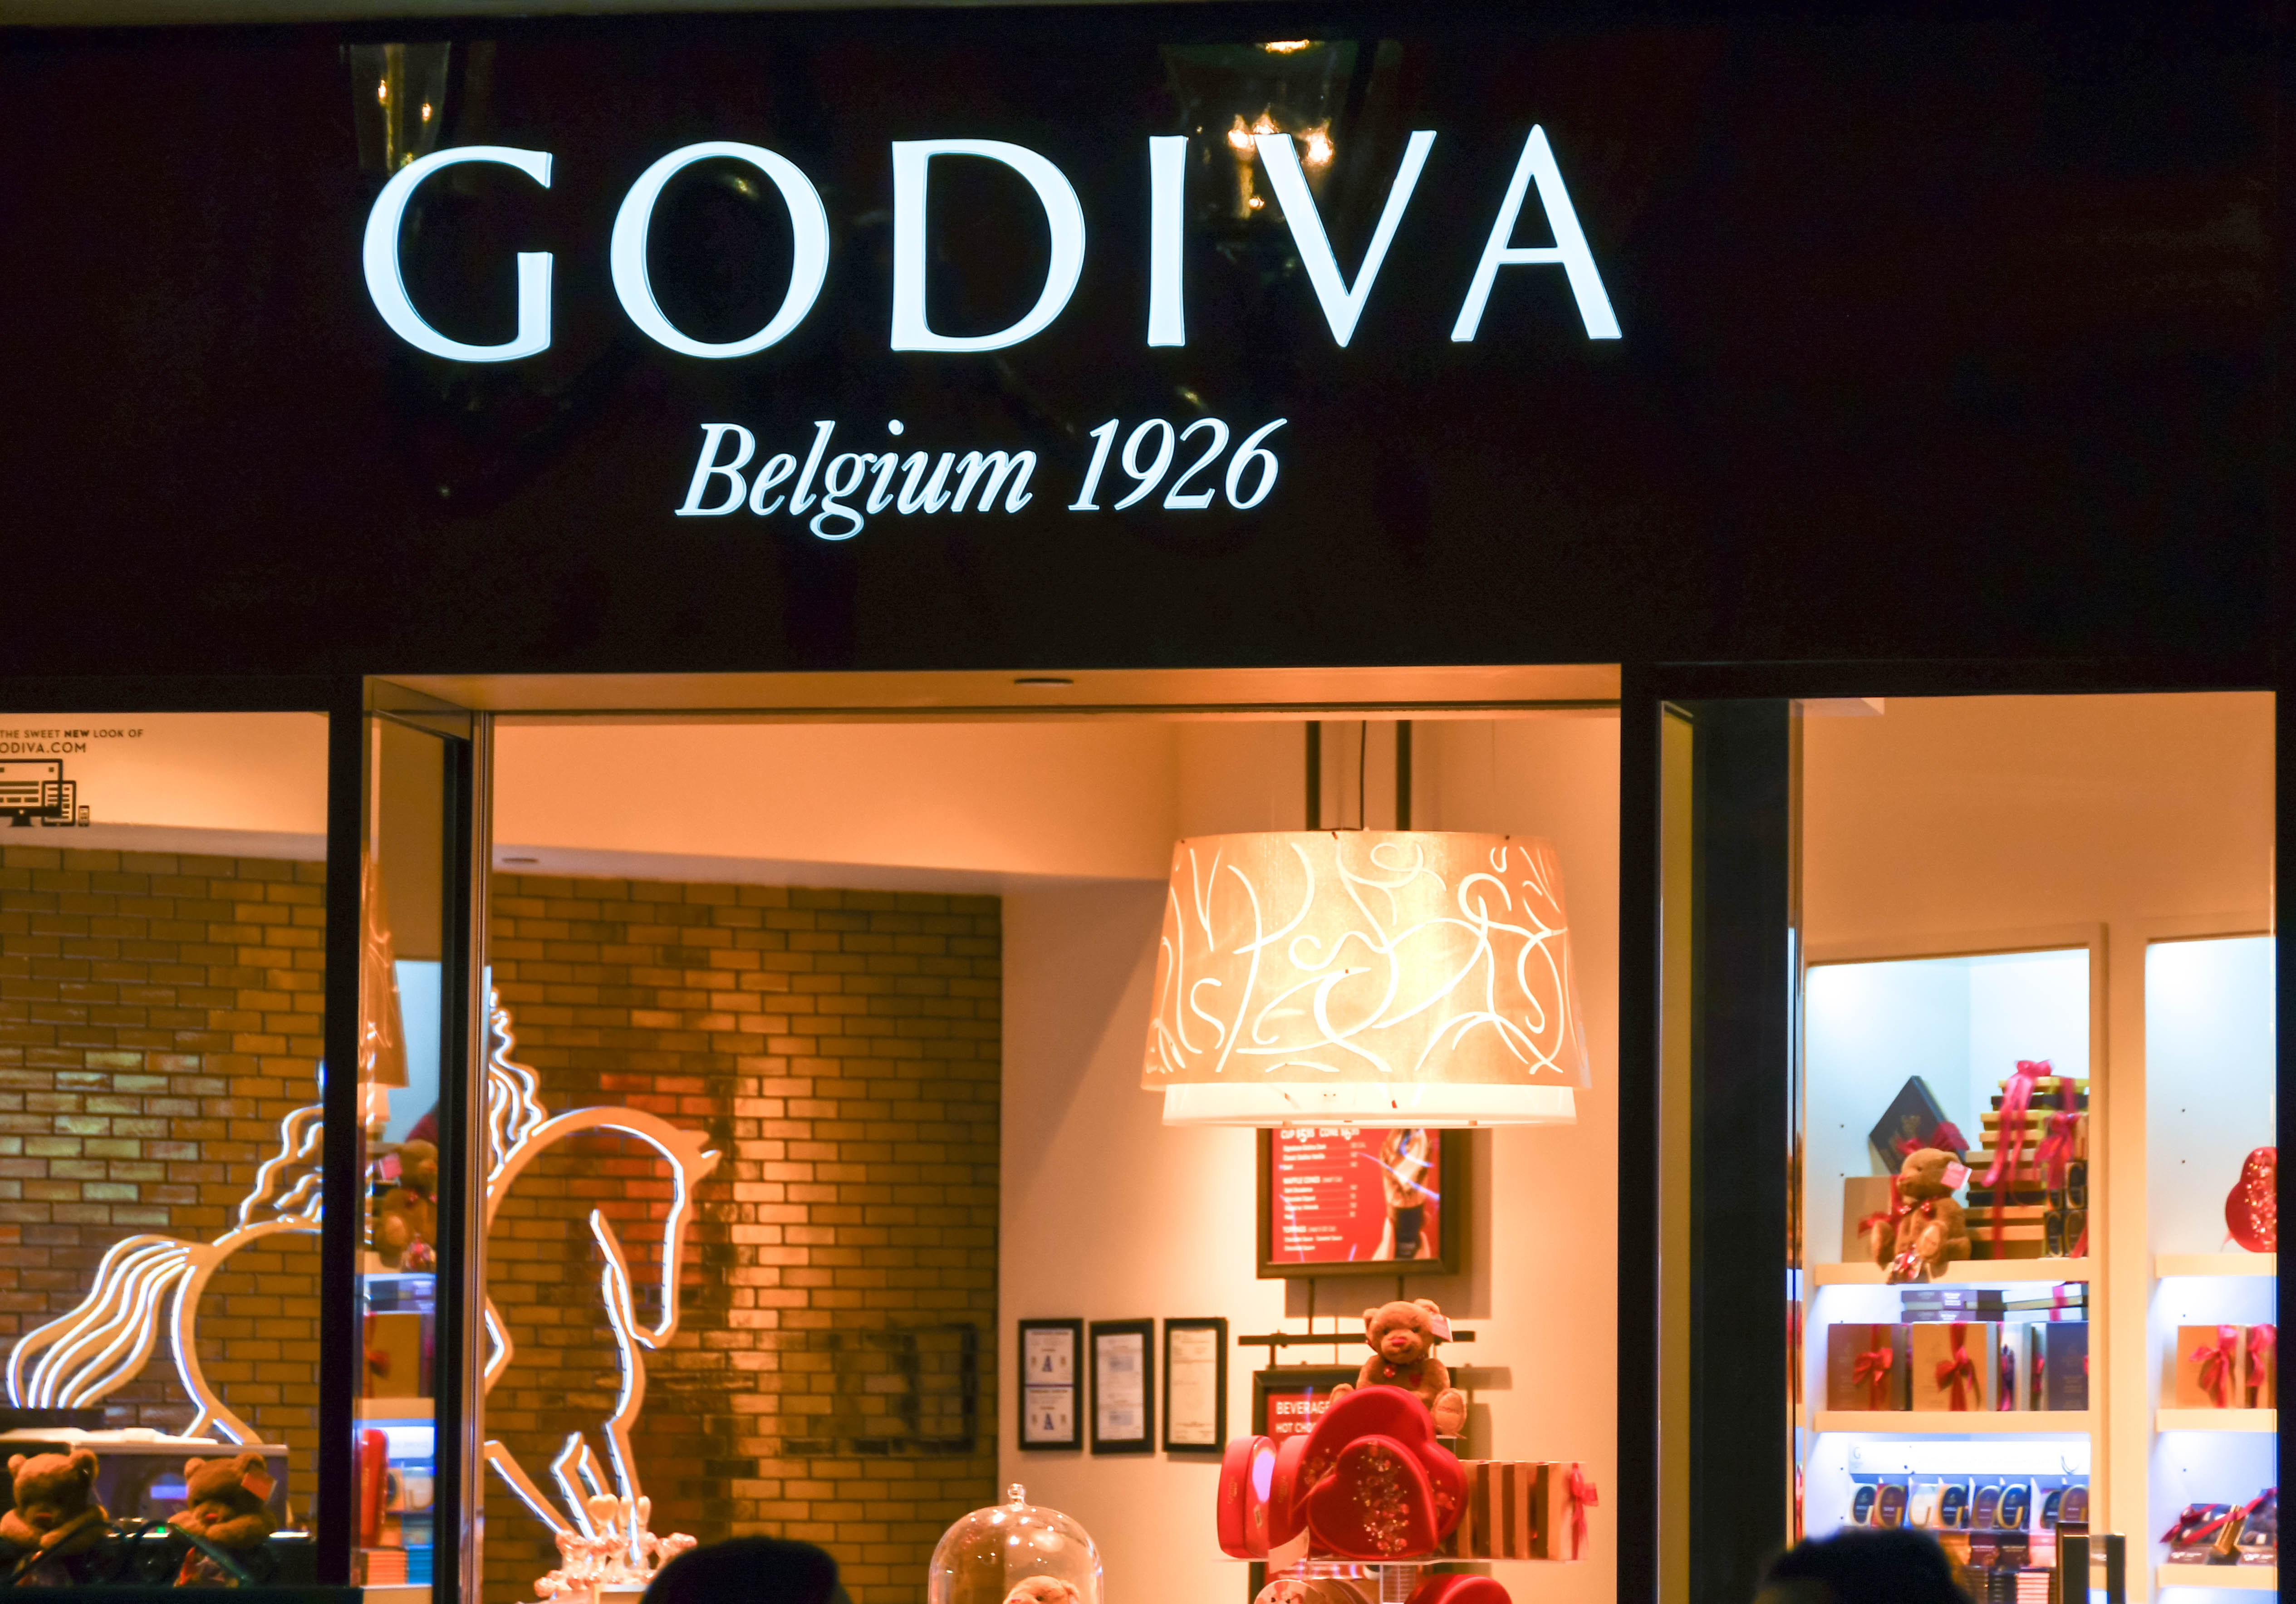 The front of a Godiva chocolate store